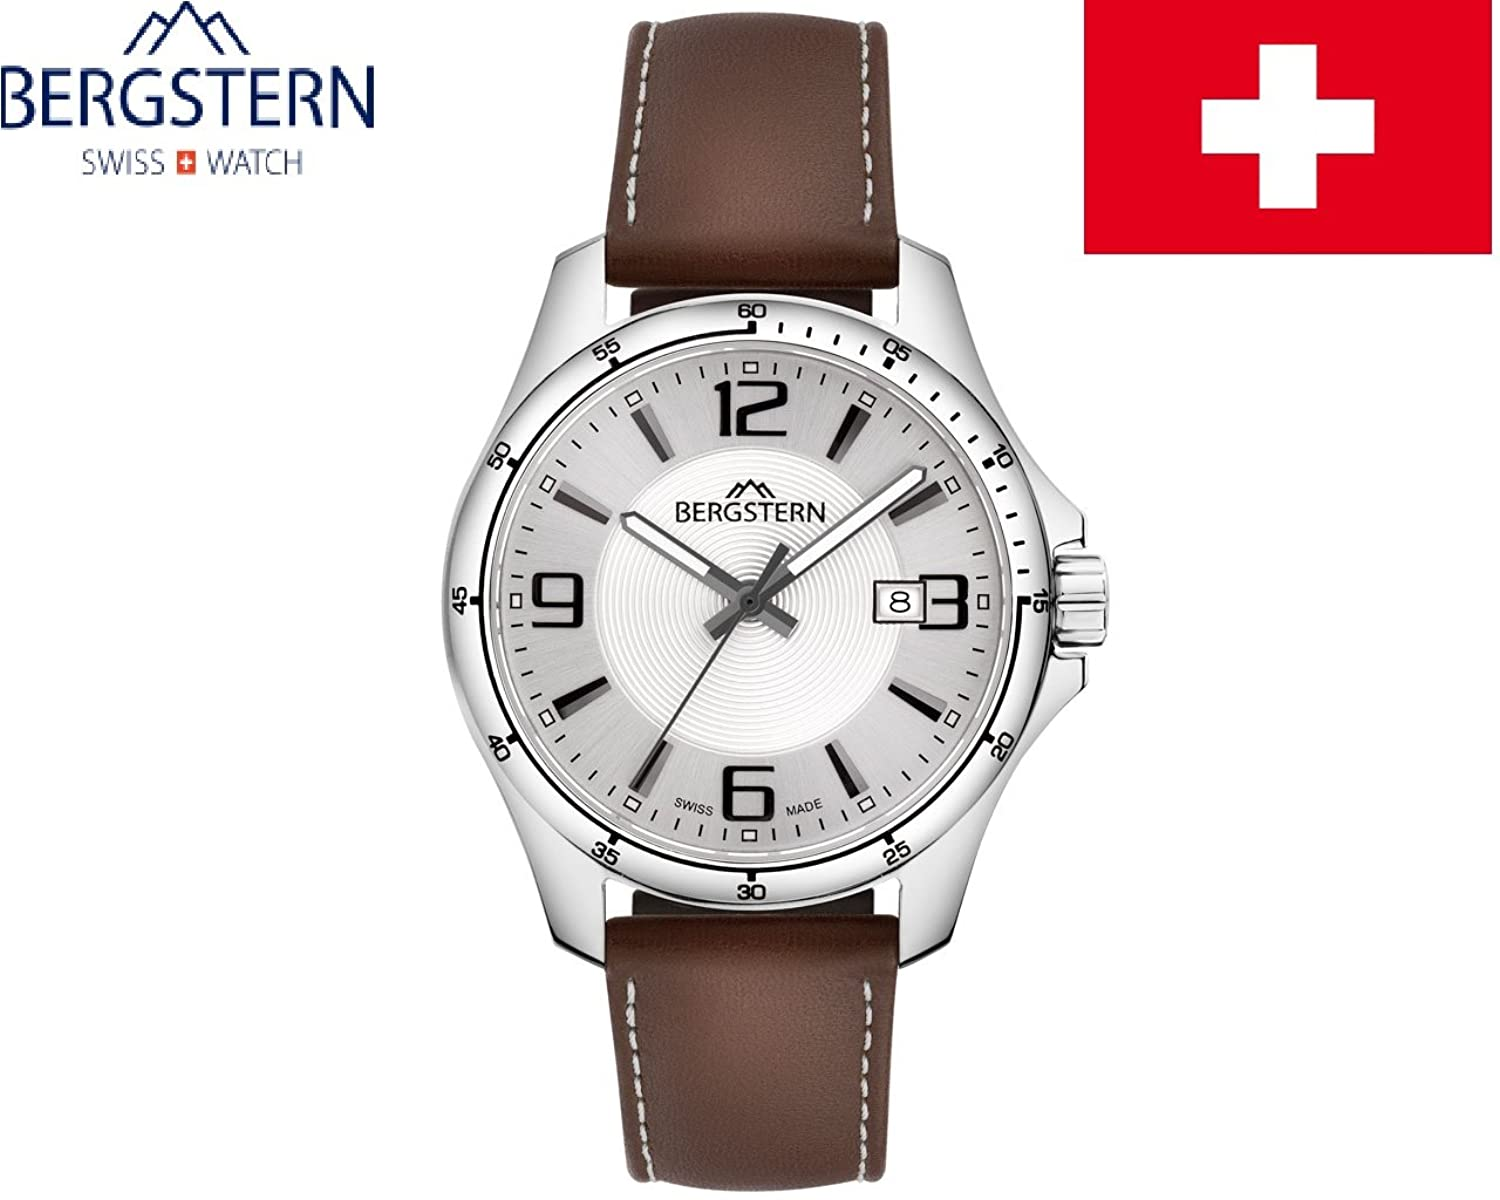 ARMBANDUHR HERREN KOLLEKTION ACTIVE BERGSTERN B015G078 whatch SWISS MADE hoher QualitÄt MADE IN SVIZZERA.Cinturino